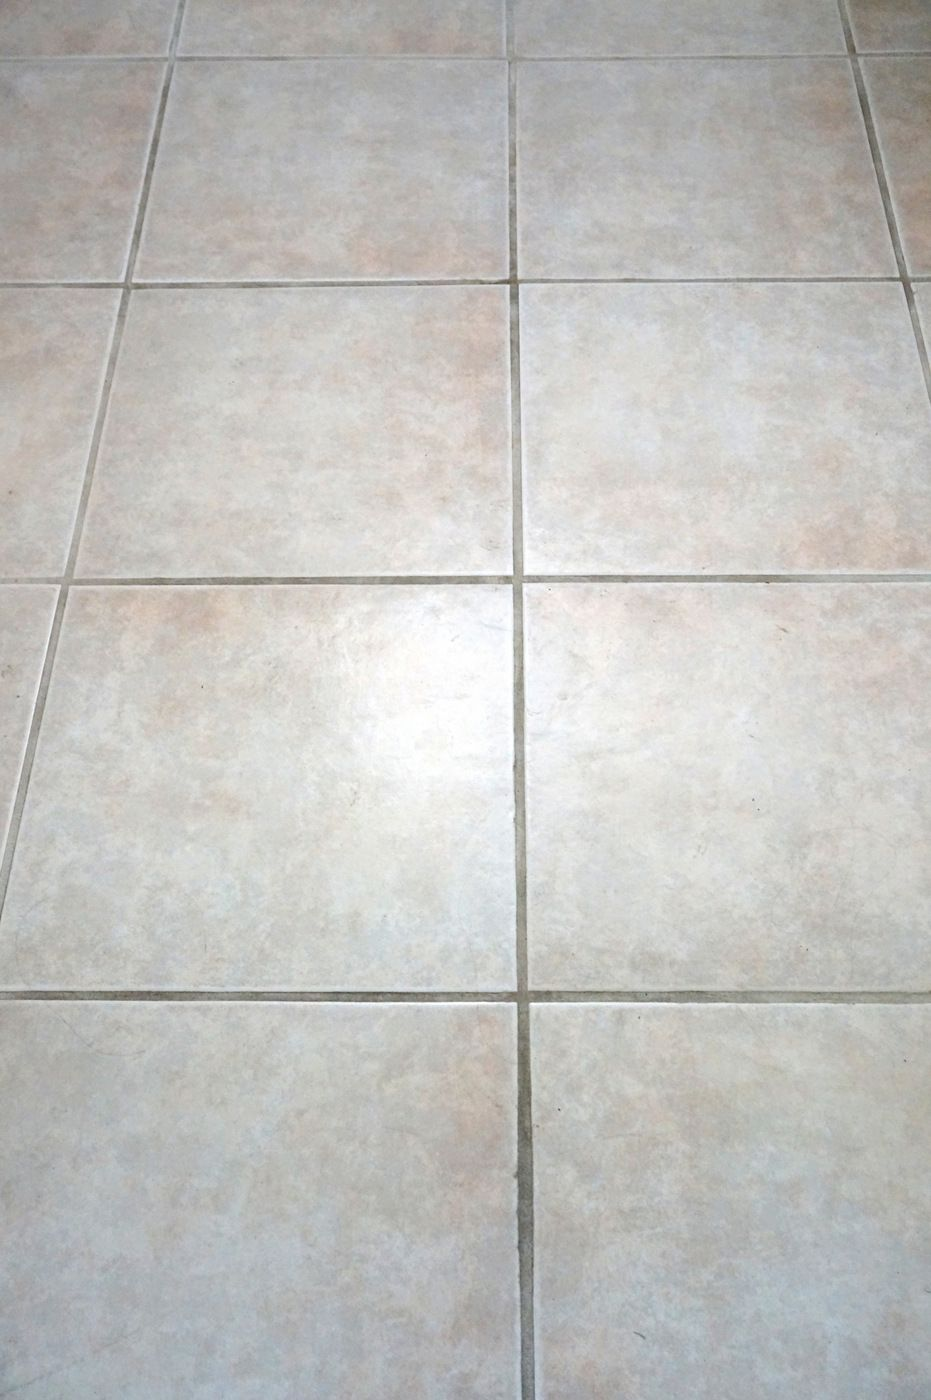 Does Cleaning Grout With Baking Soda And Vinegar Really Work